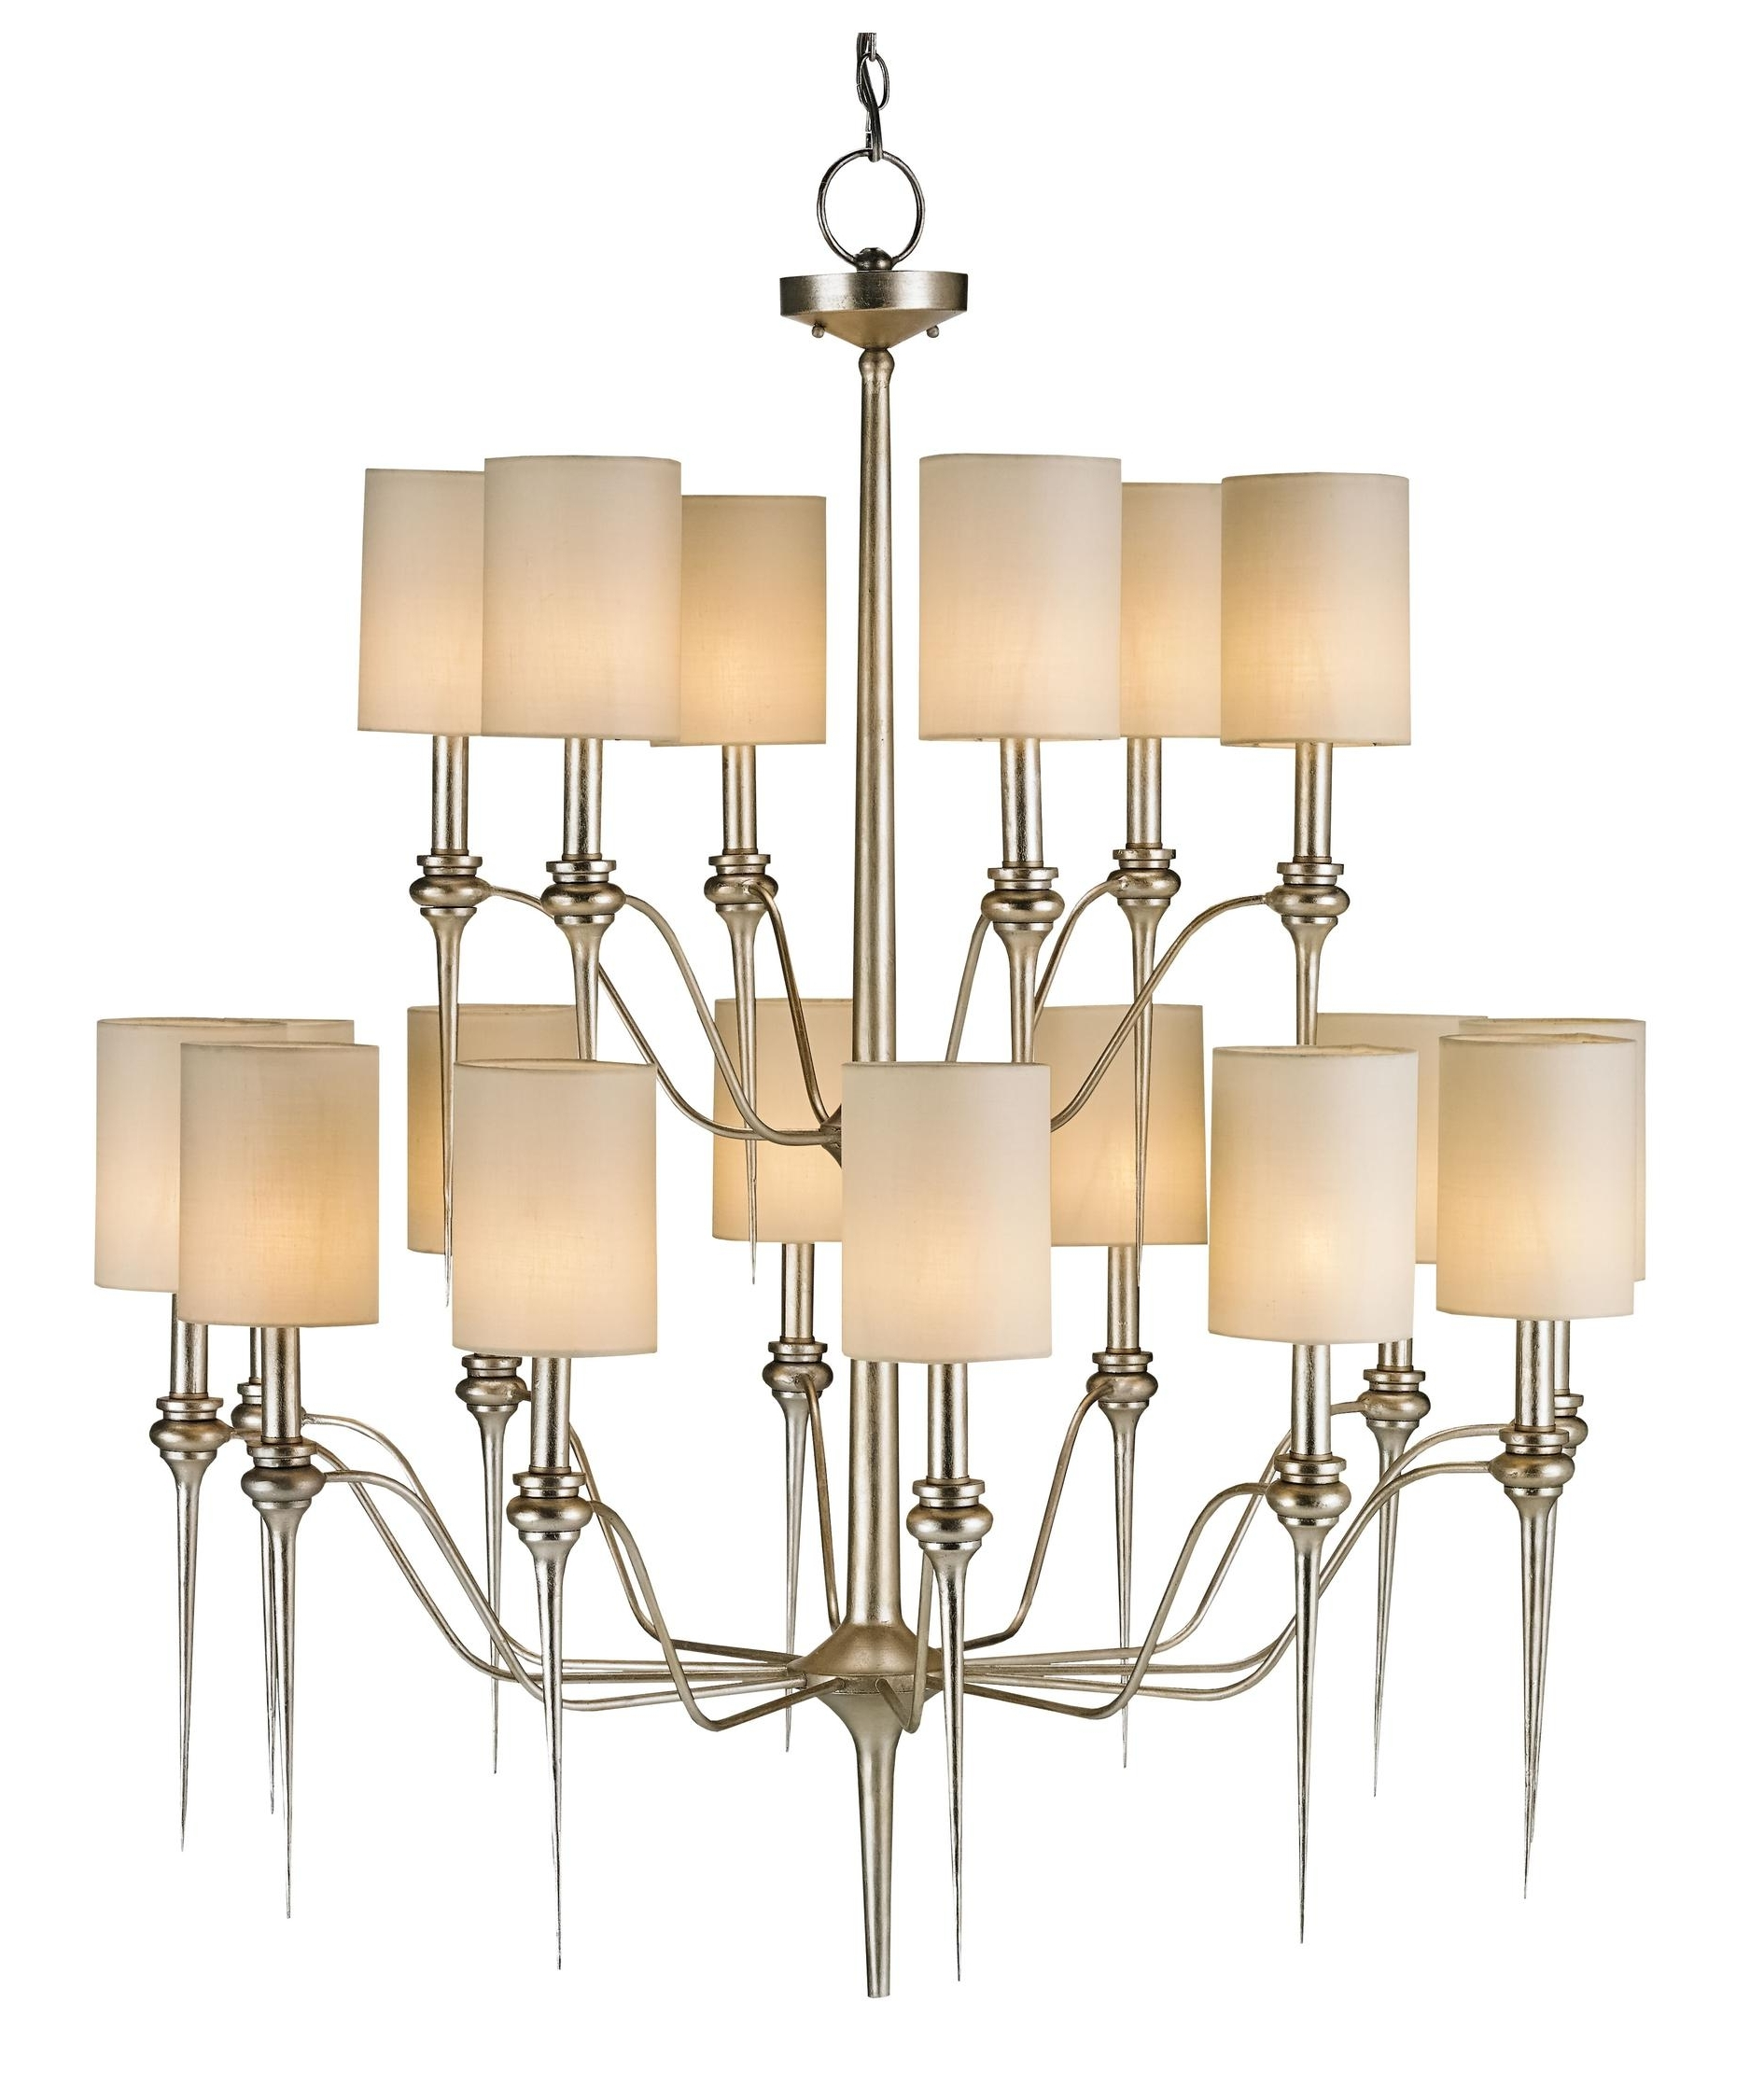 Currey And Company 9807 Chaddbury 43 Inch Large Foyer Chandelier Within 2018 Modern Silver Chandelier (View 20 of 20)